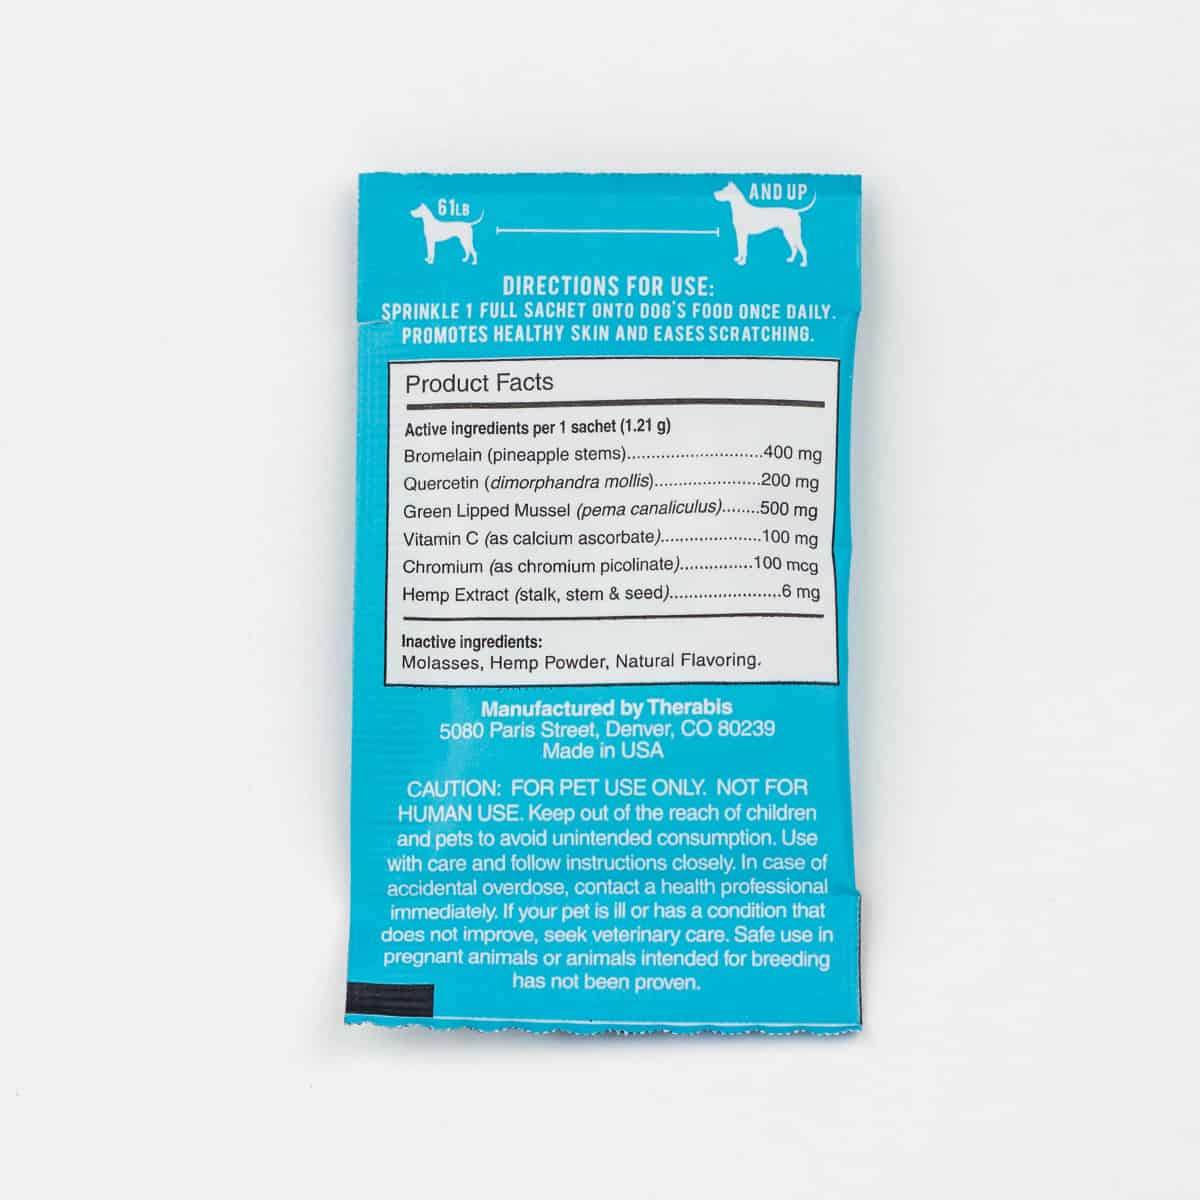 Dazzling S S Itch Pack Dogs Canada Quercetin Large Dogs Hemp Oil Quercetin Dogs Australia bark post Quercetin For Dogs